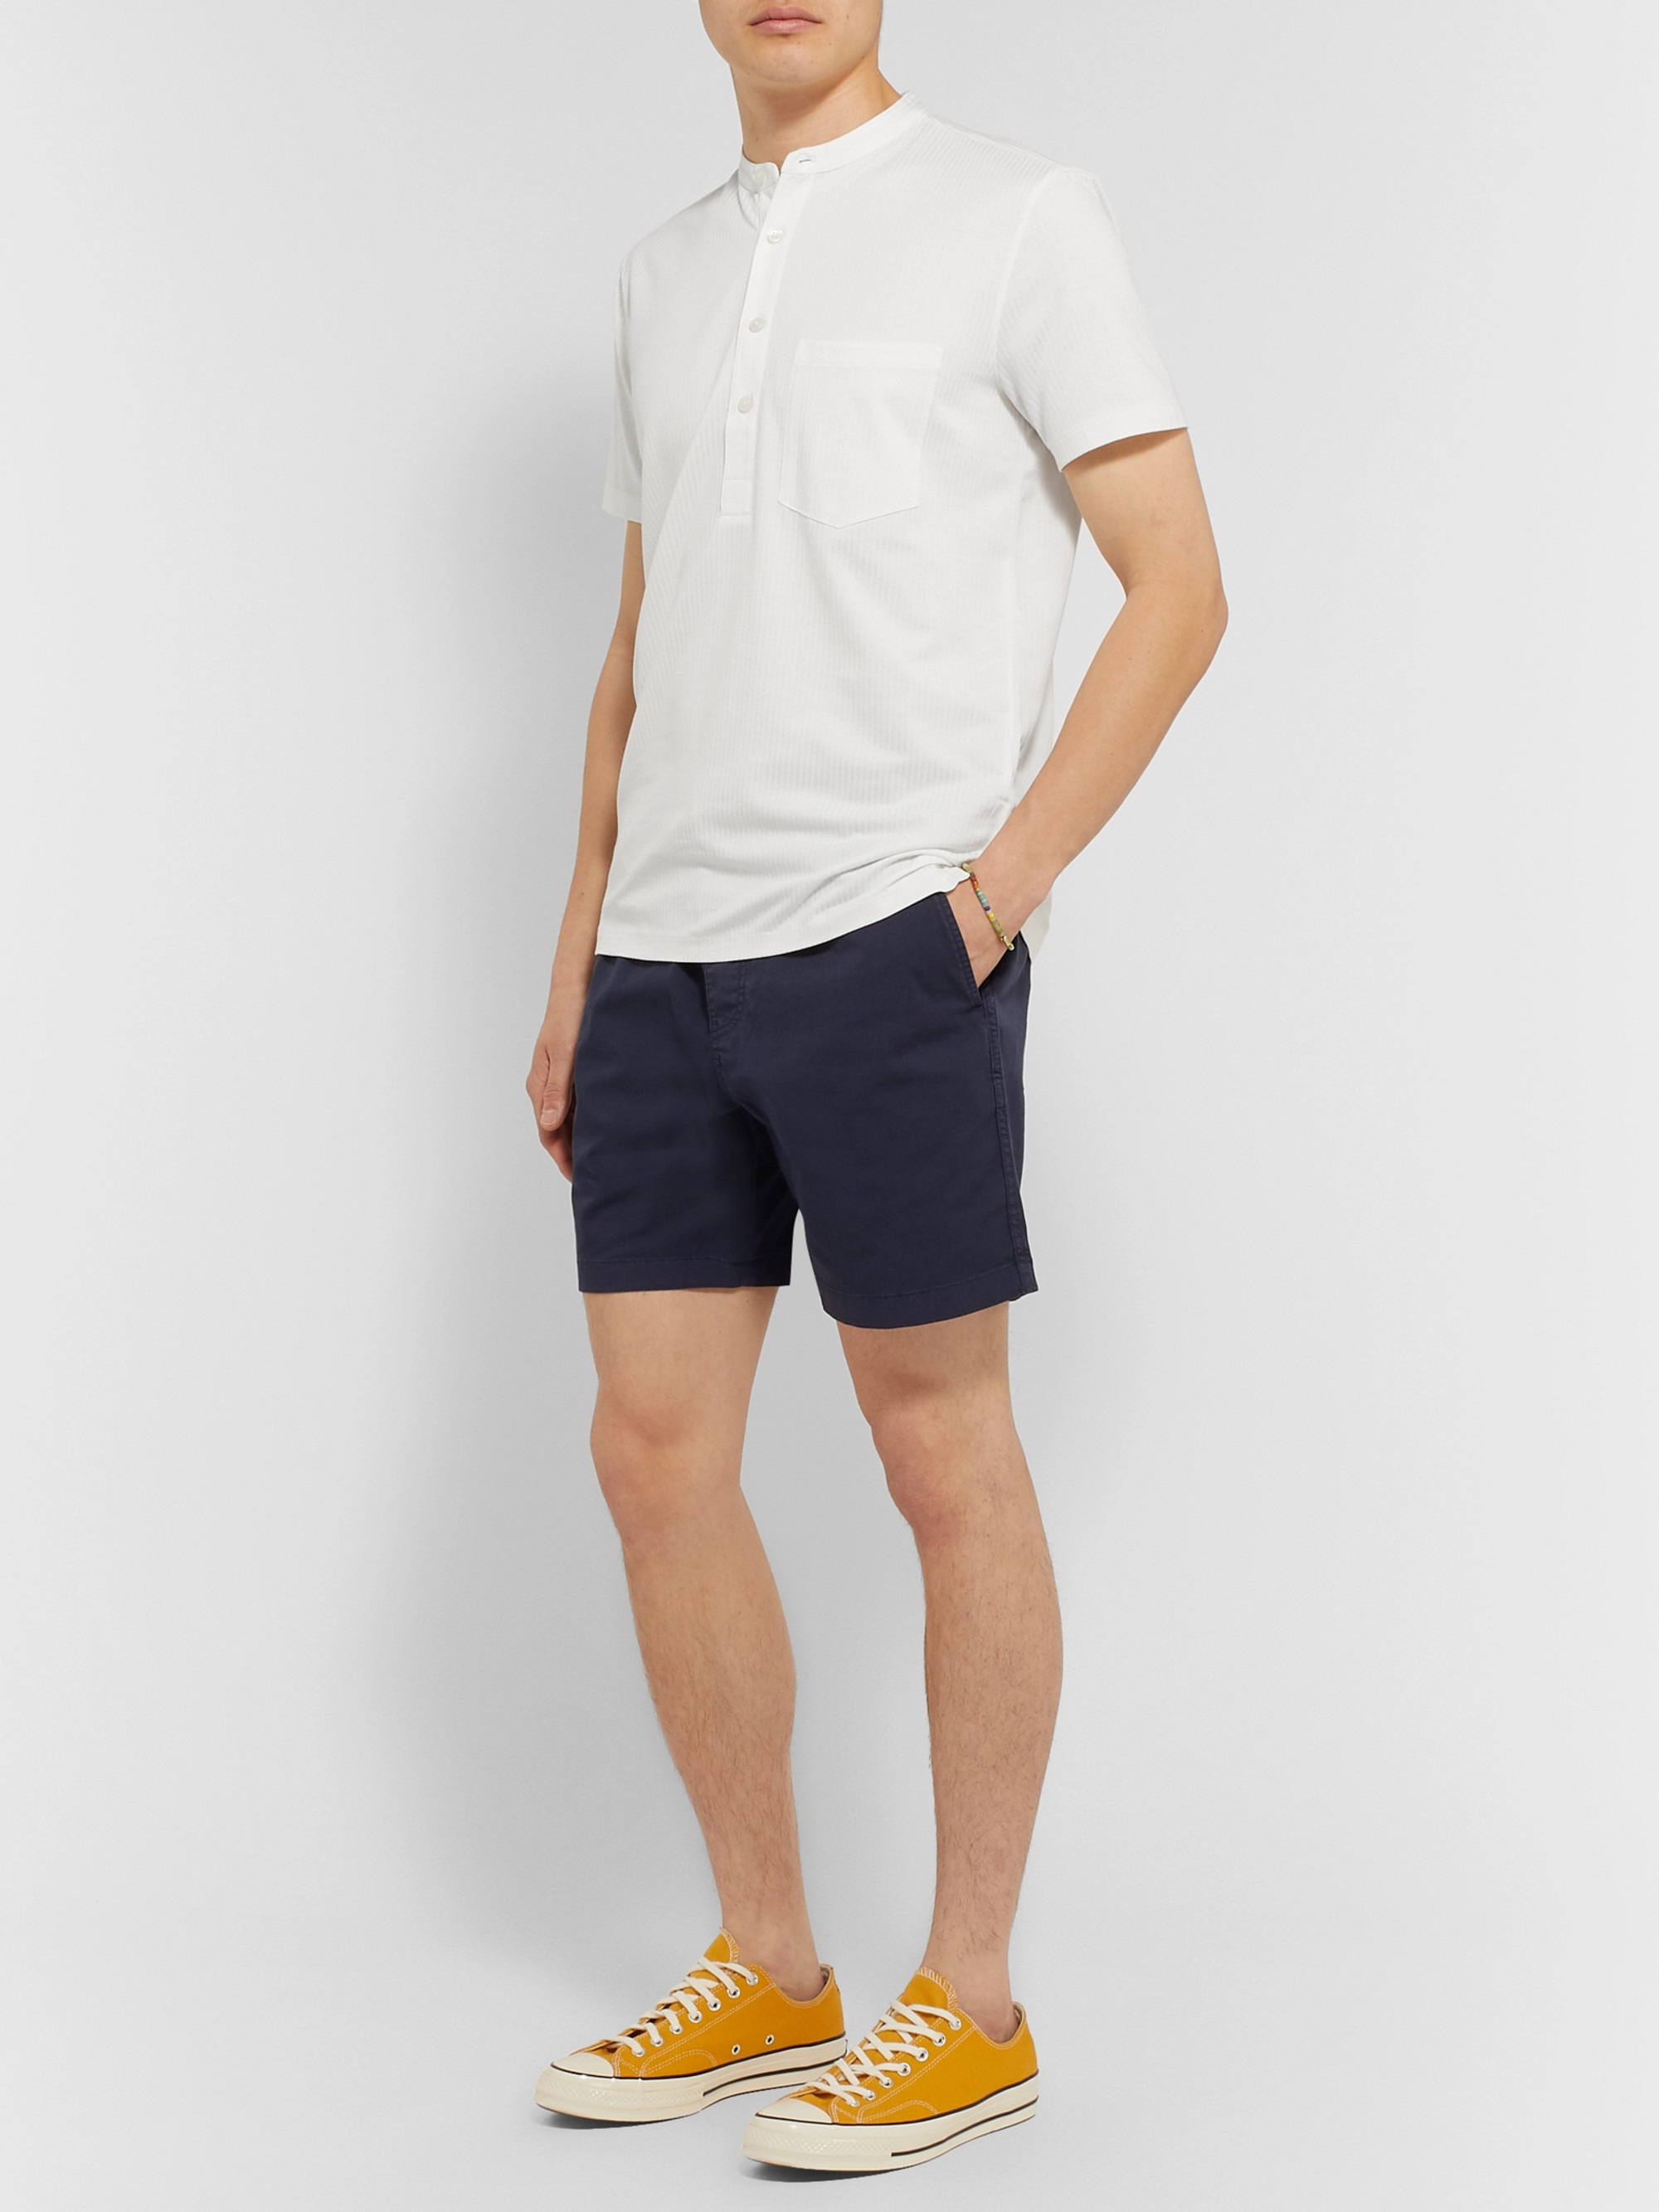 Club Monaco Striped Cotton-Blend Jersey Henley T-Shirt